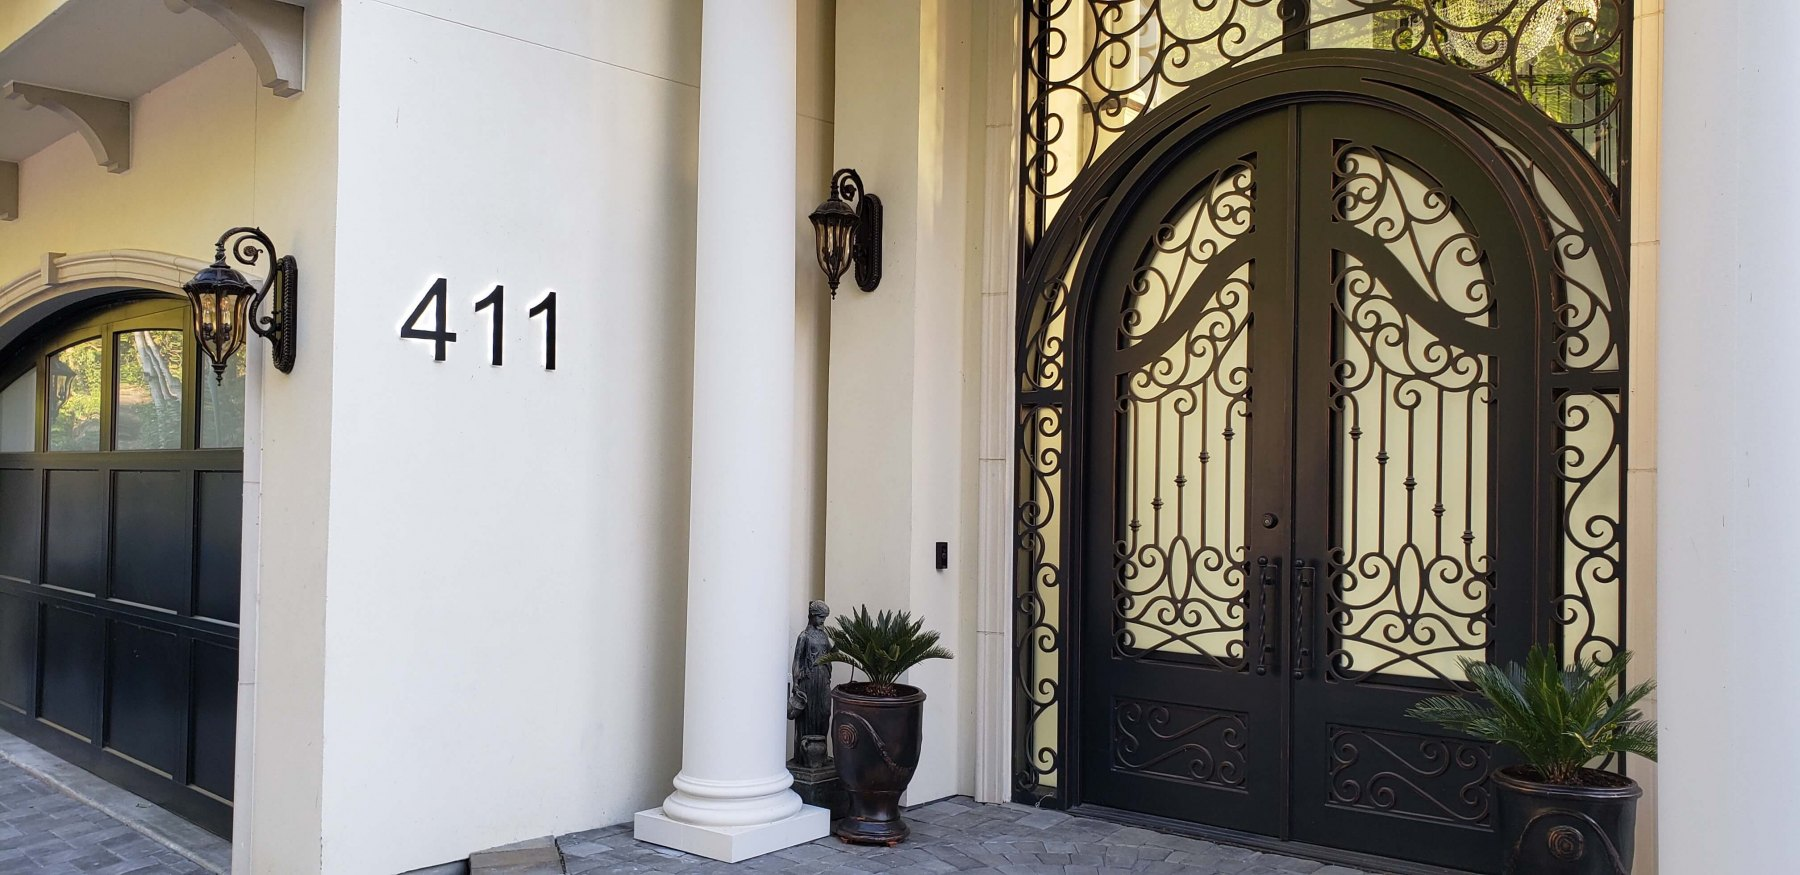 Vivid House Number | Residential House Sign | Number 411 | Black Finish | LED Backlight | Whitewall in front of a house